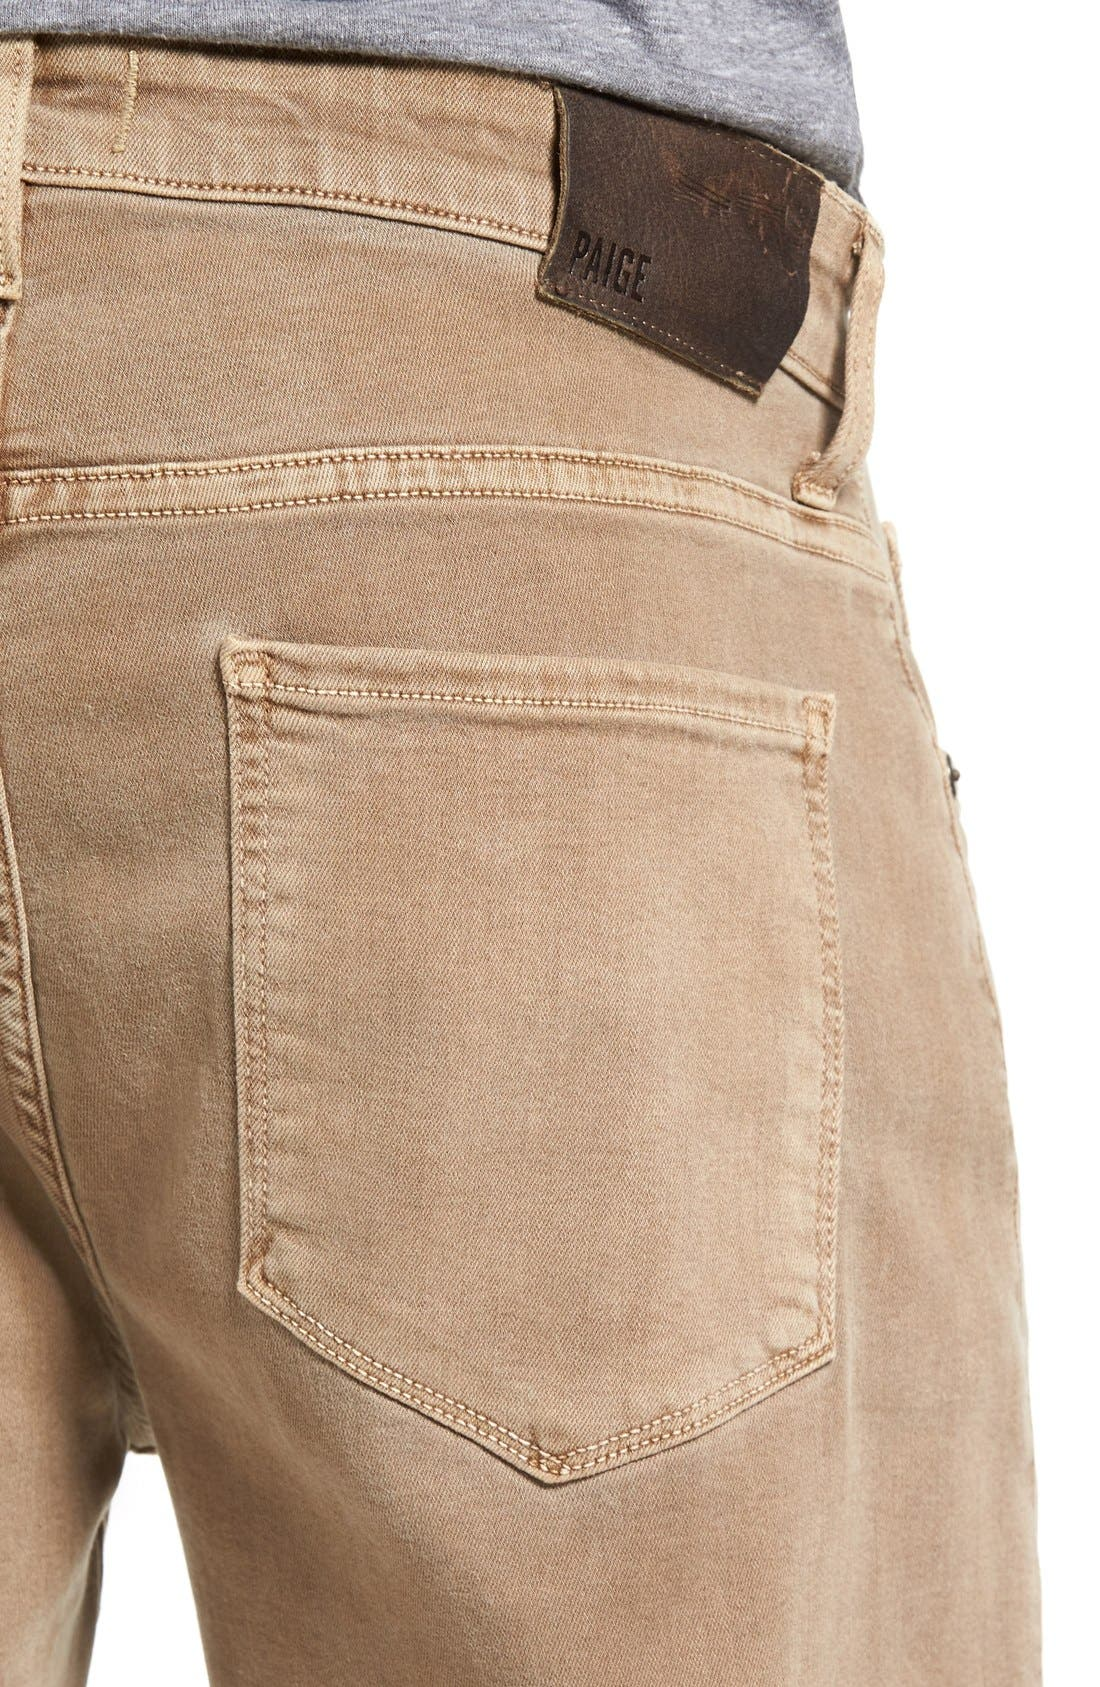 Transcend - Federal Slim Straight Leg Jeans,                             Alternate thumbnail 4, color,                             Fennel Seed